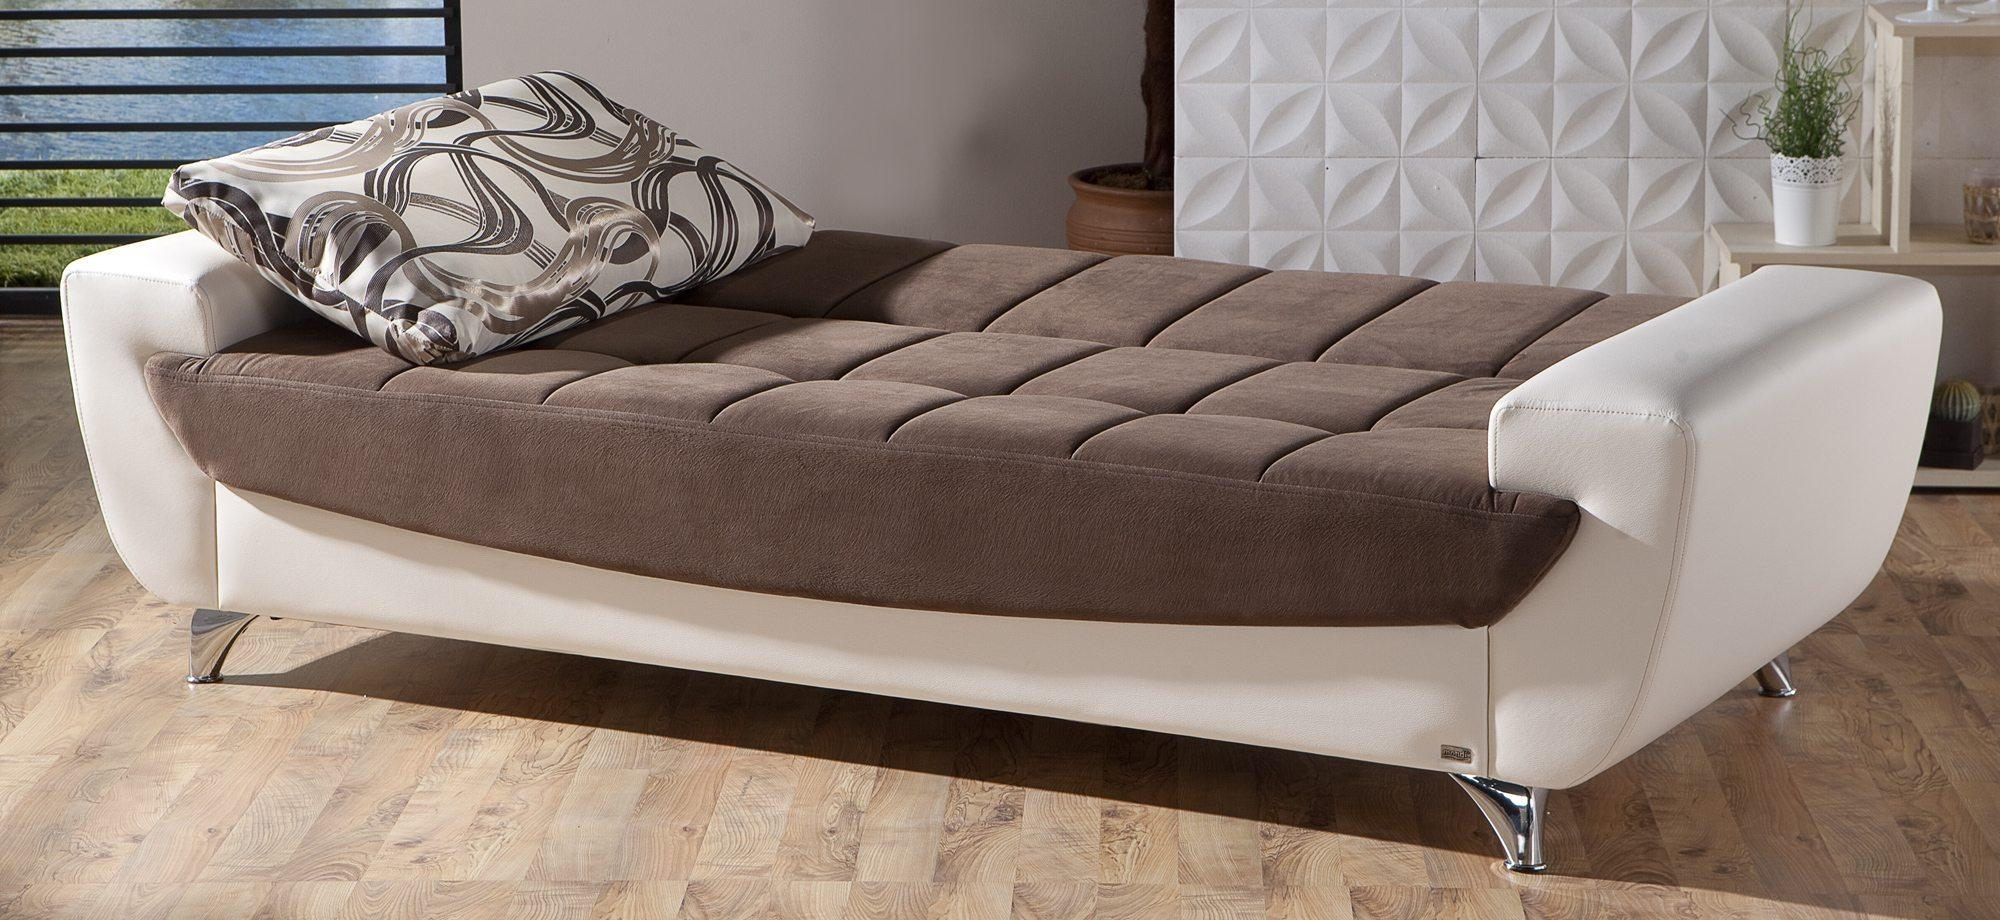 Furniture: Contemporary Futon Beds Target For Lovely Home In Target Couch Beds (Image 3 of 20)